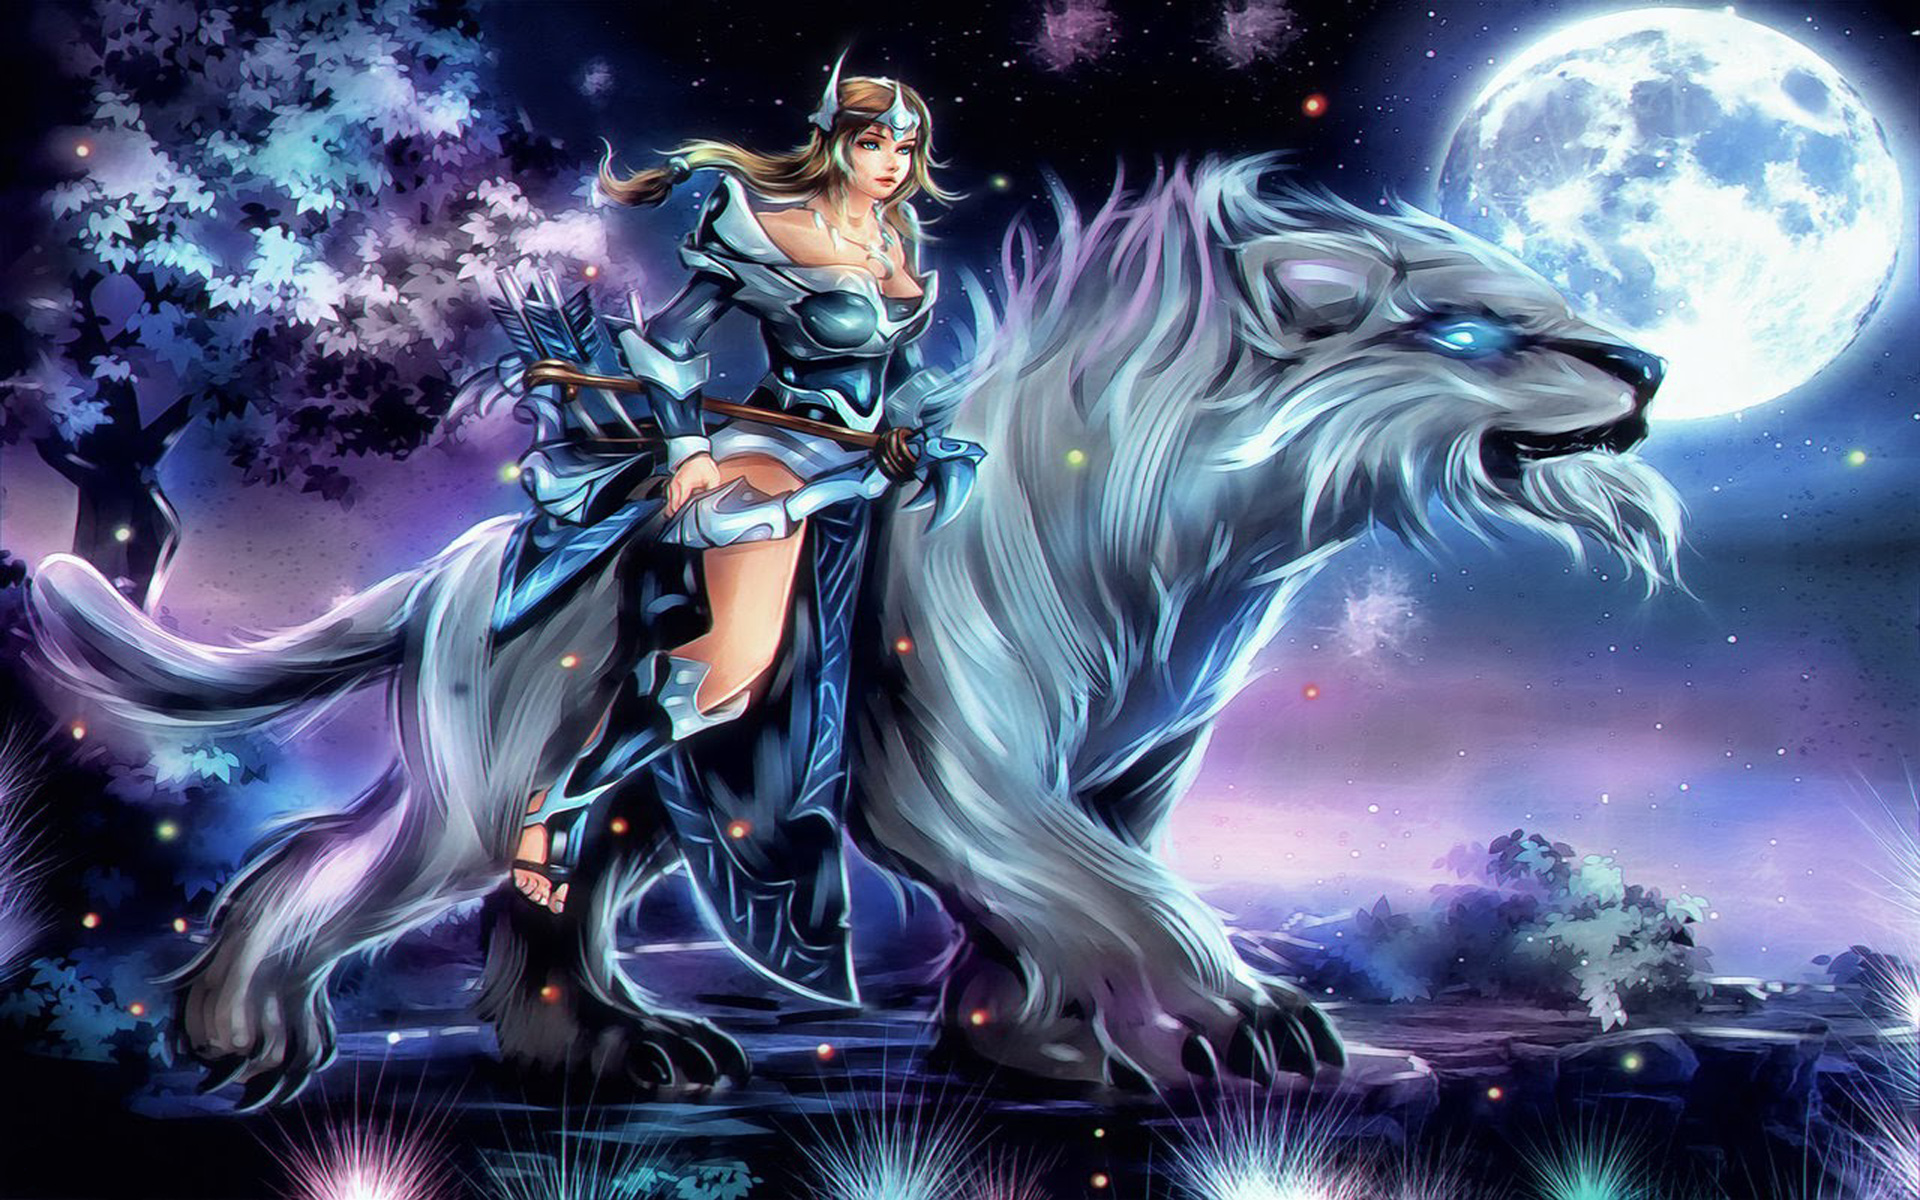 Girl Shooter Mirana Riding The Beast Dota 2 Heroes Skin Art Wallpaper Hd 1920x1200